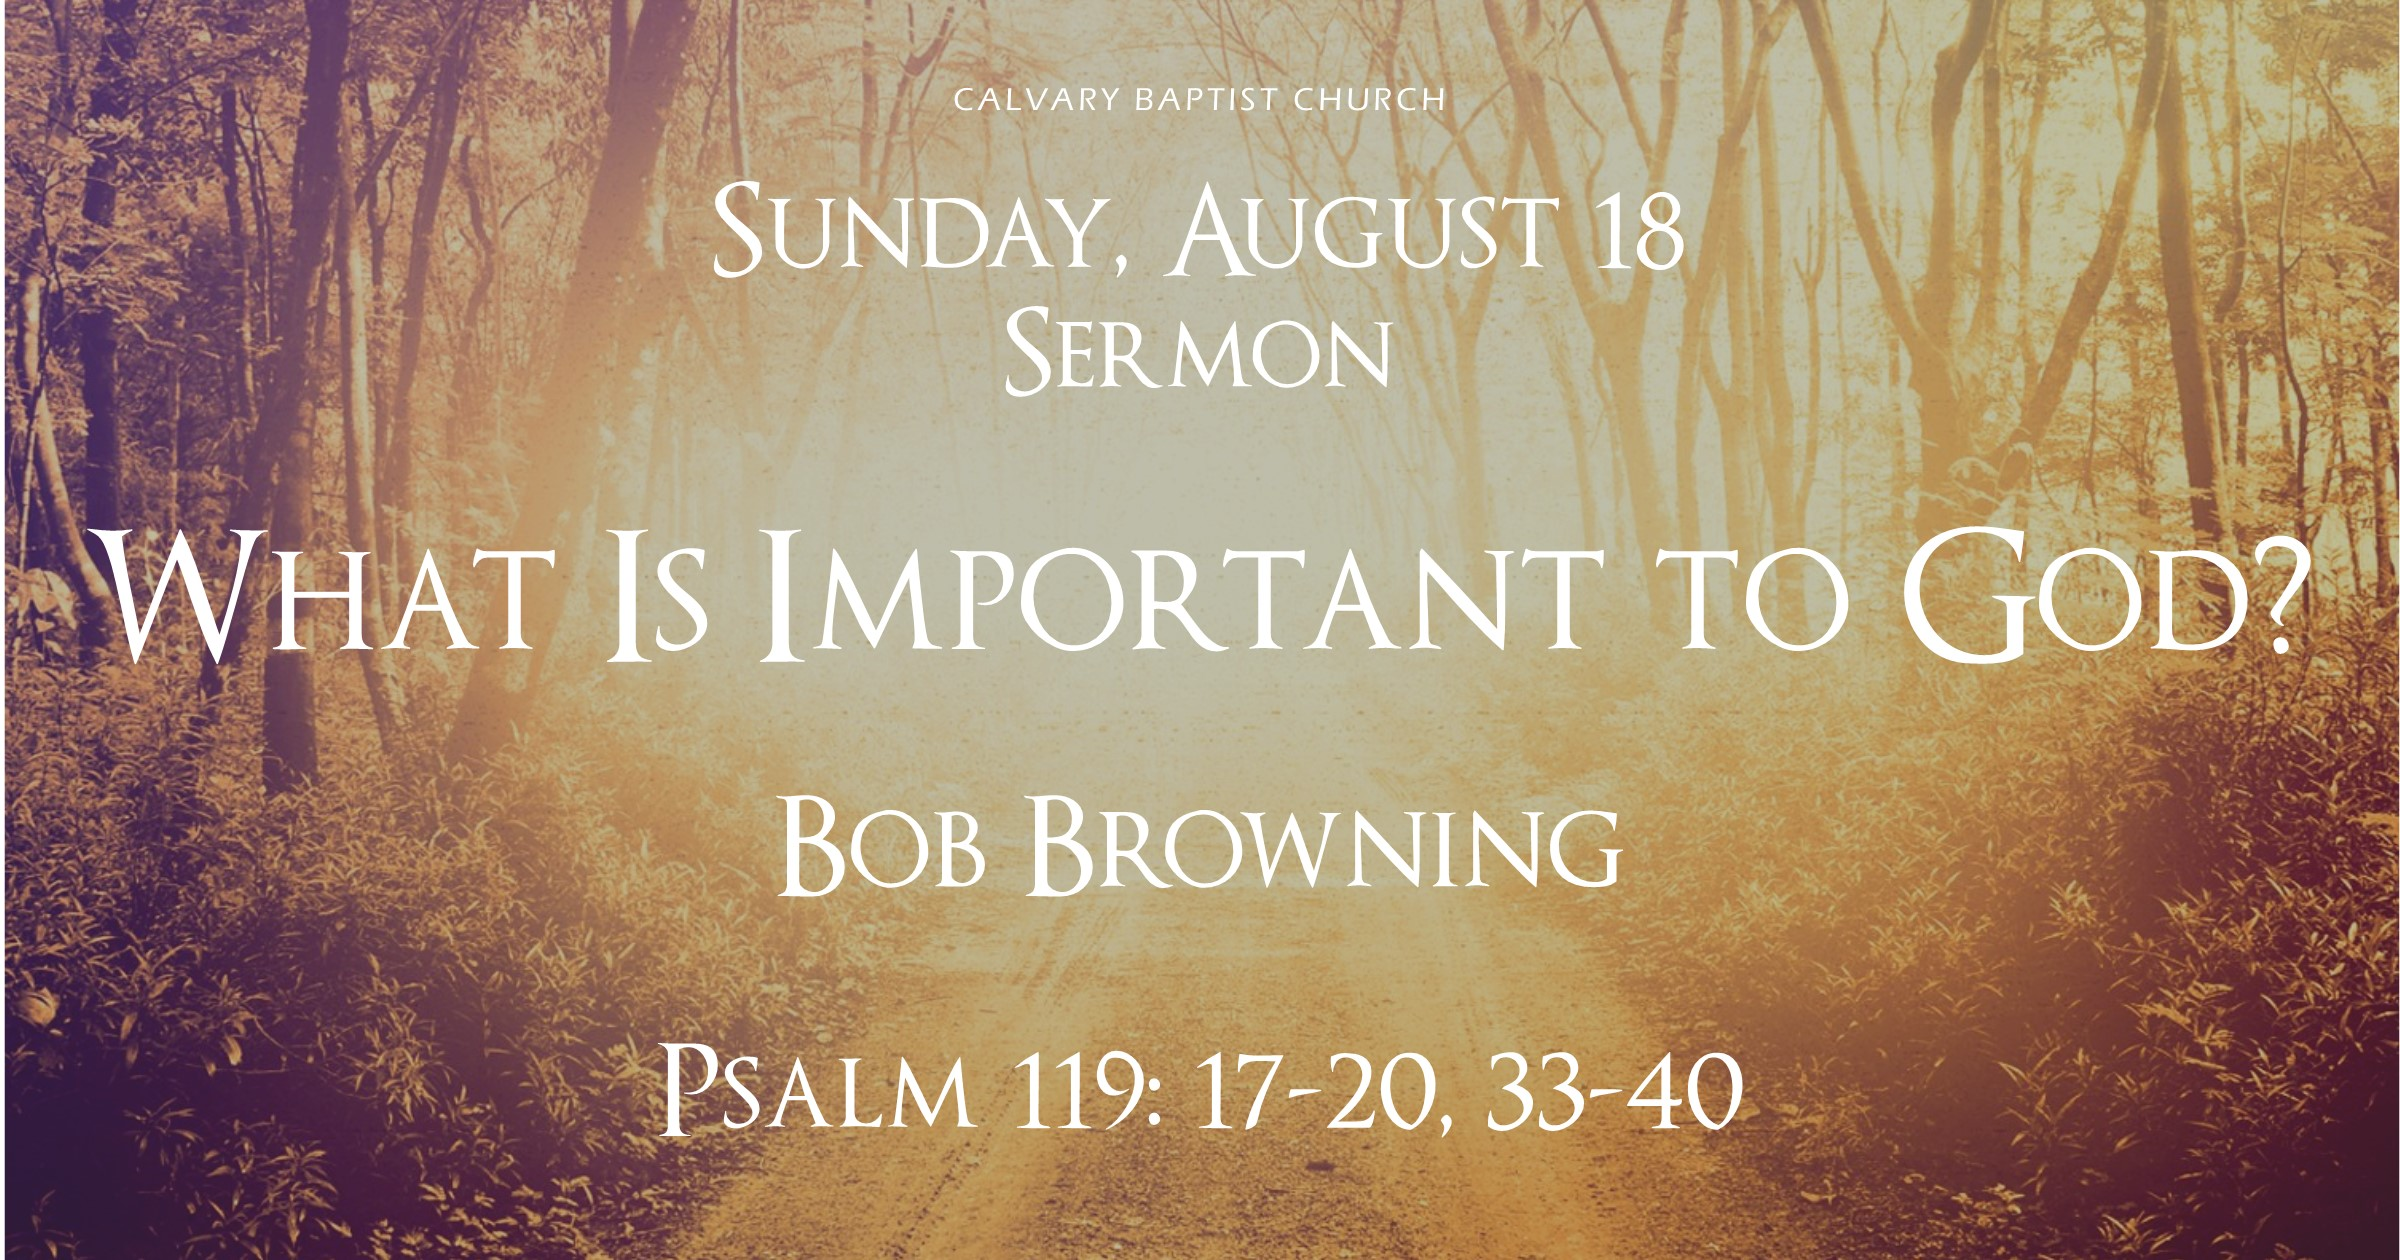 August 18 sermon fb image.jpg